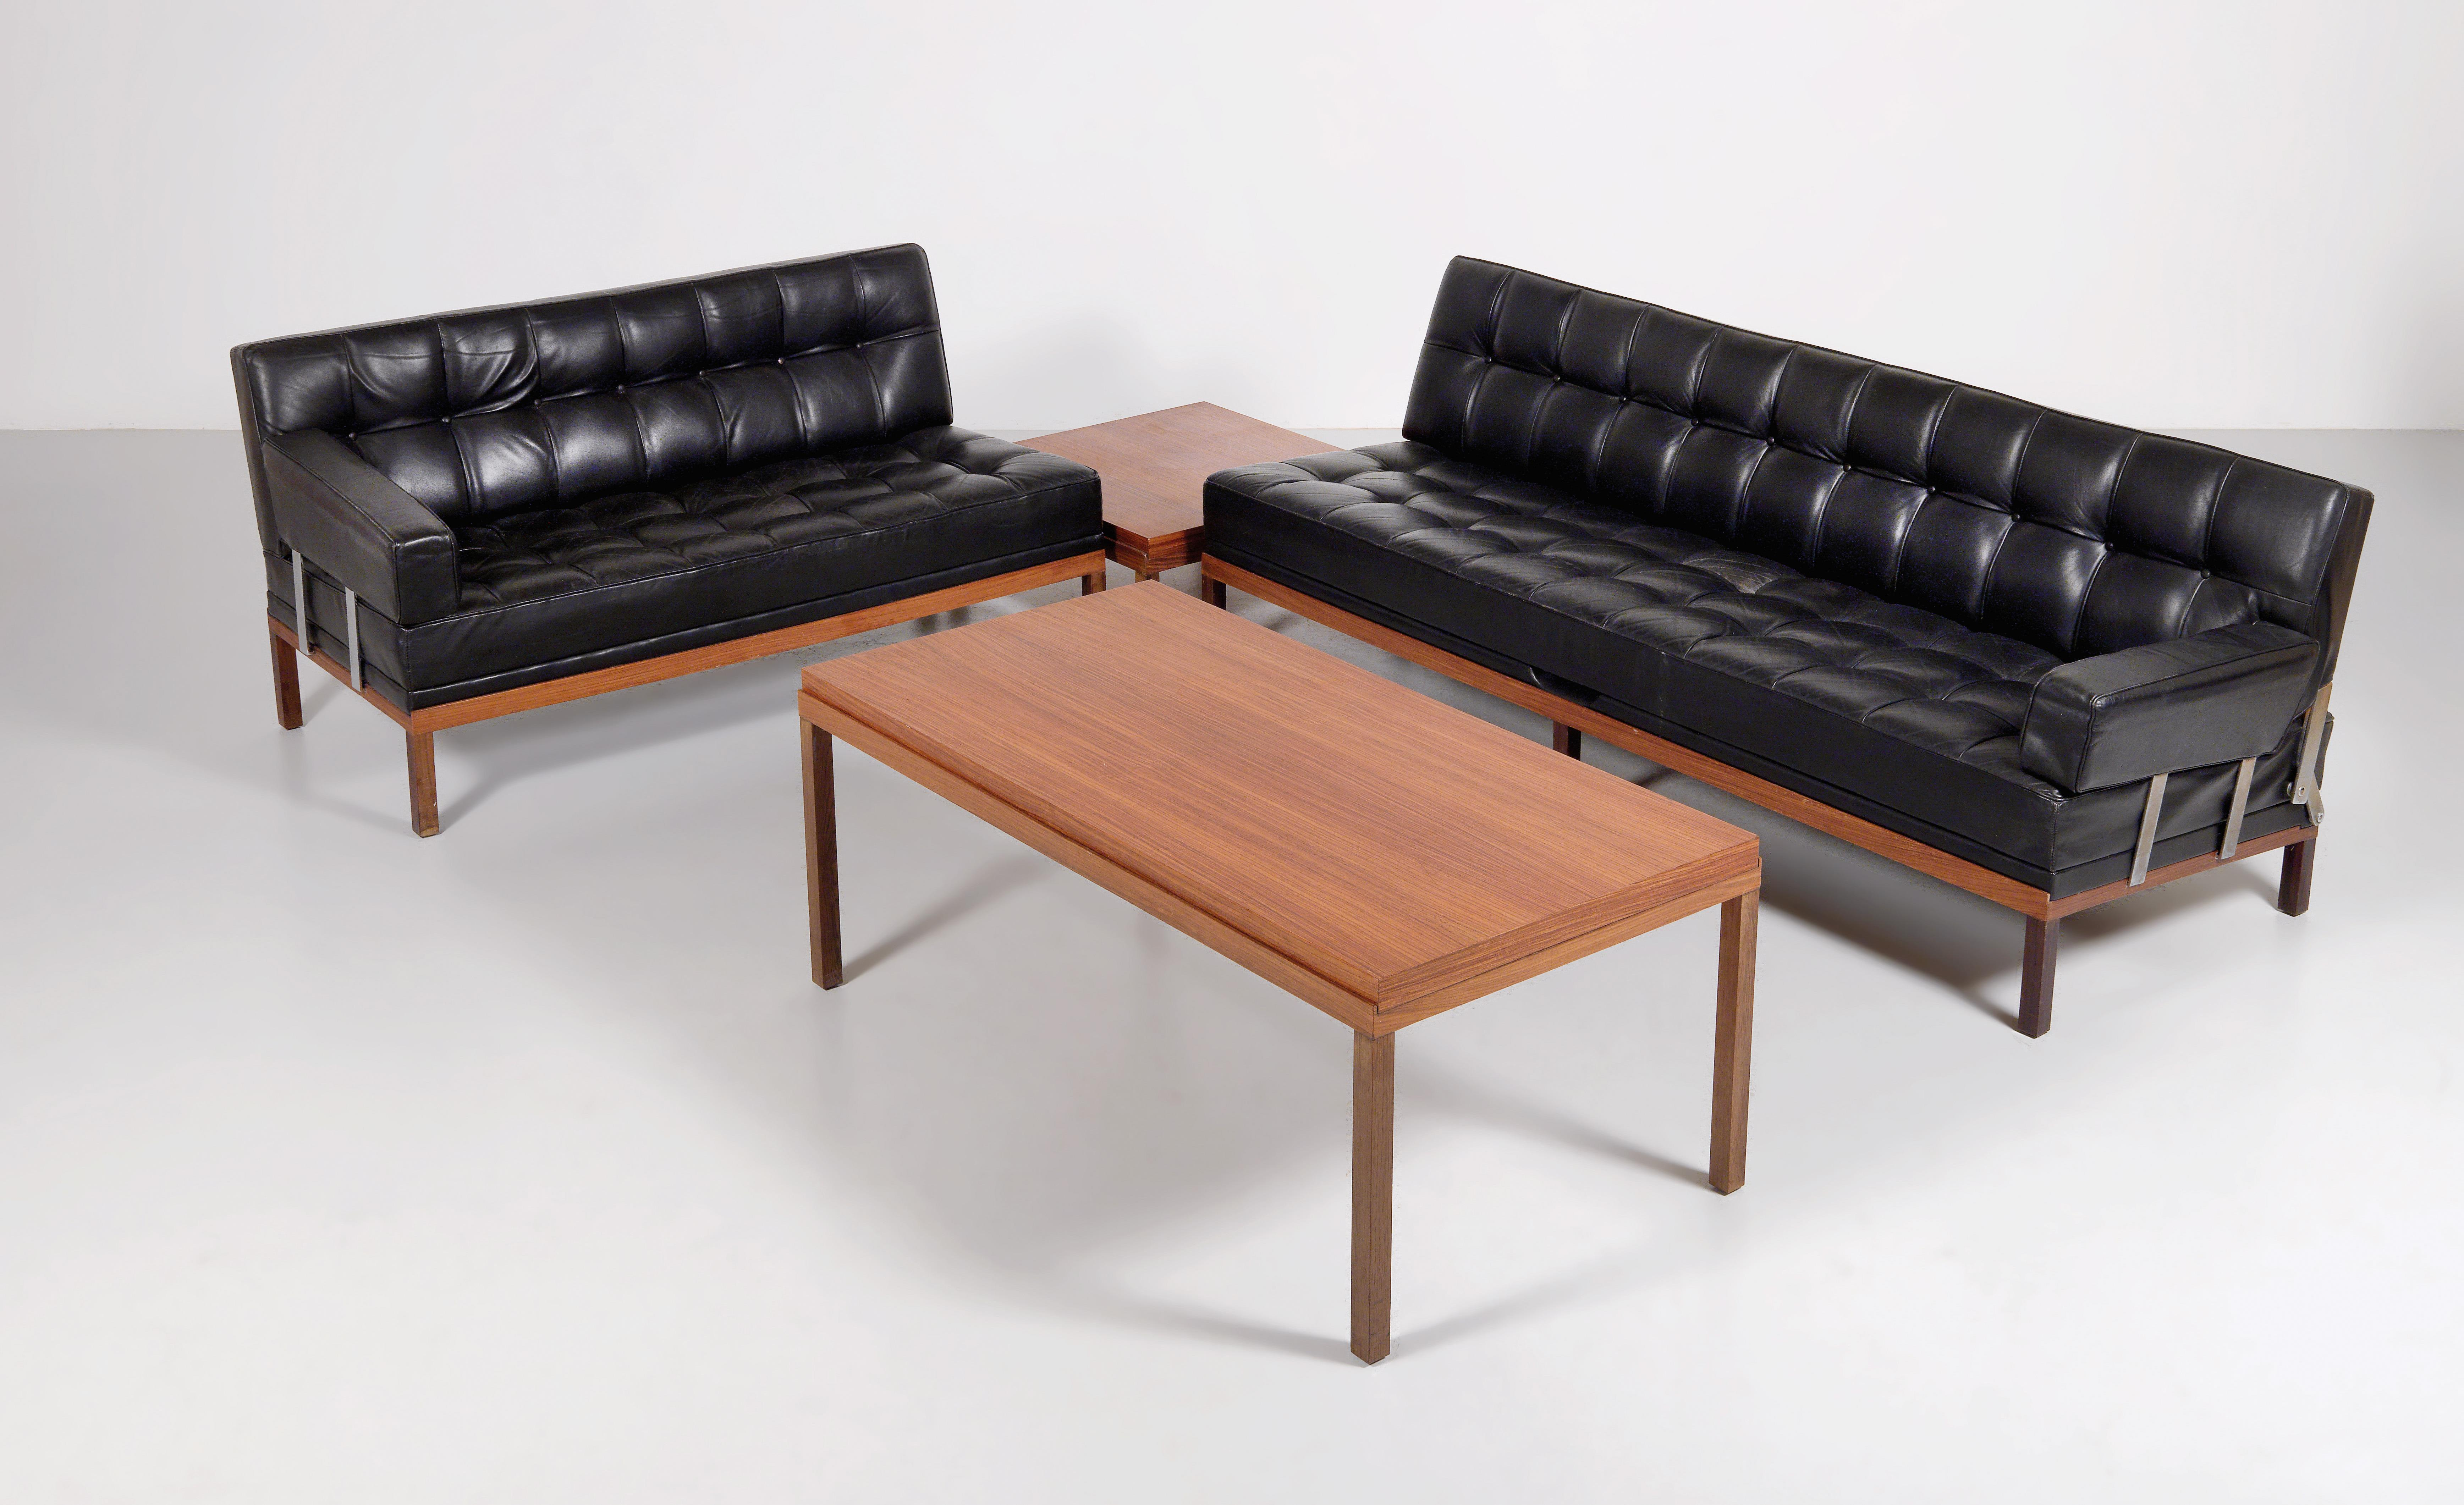 a suite of furniture from the constanze series designed by johannes spalt